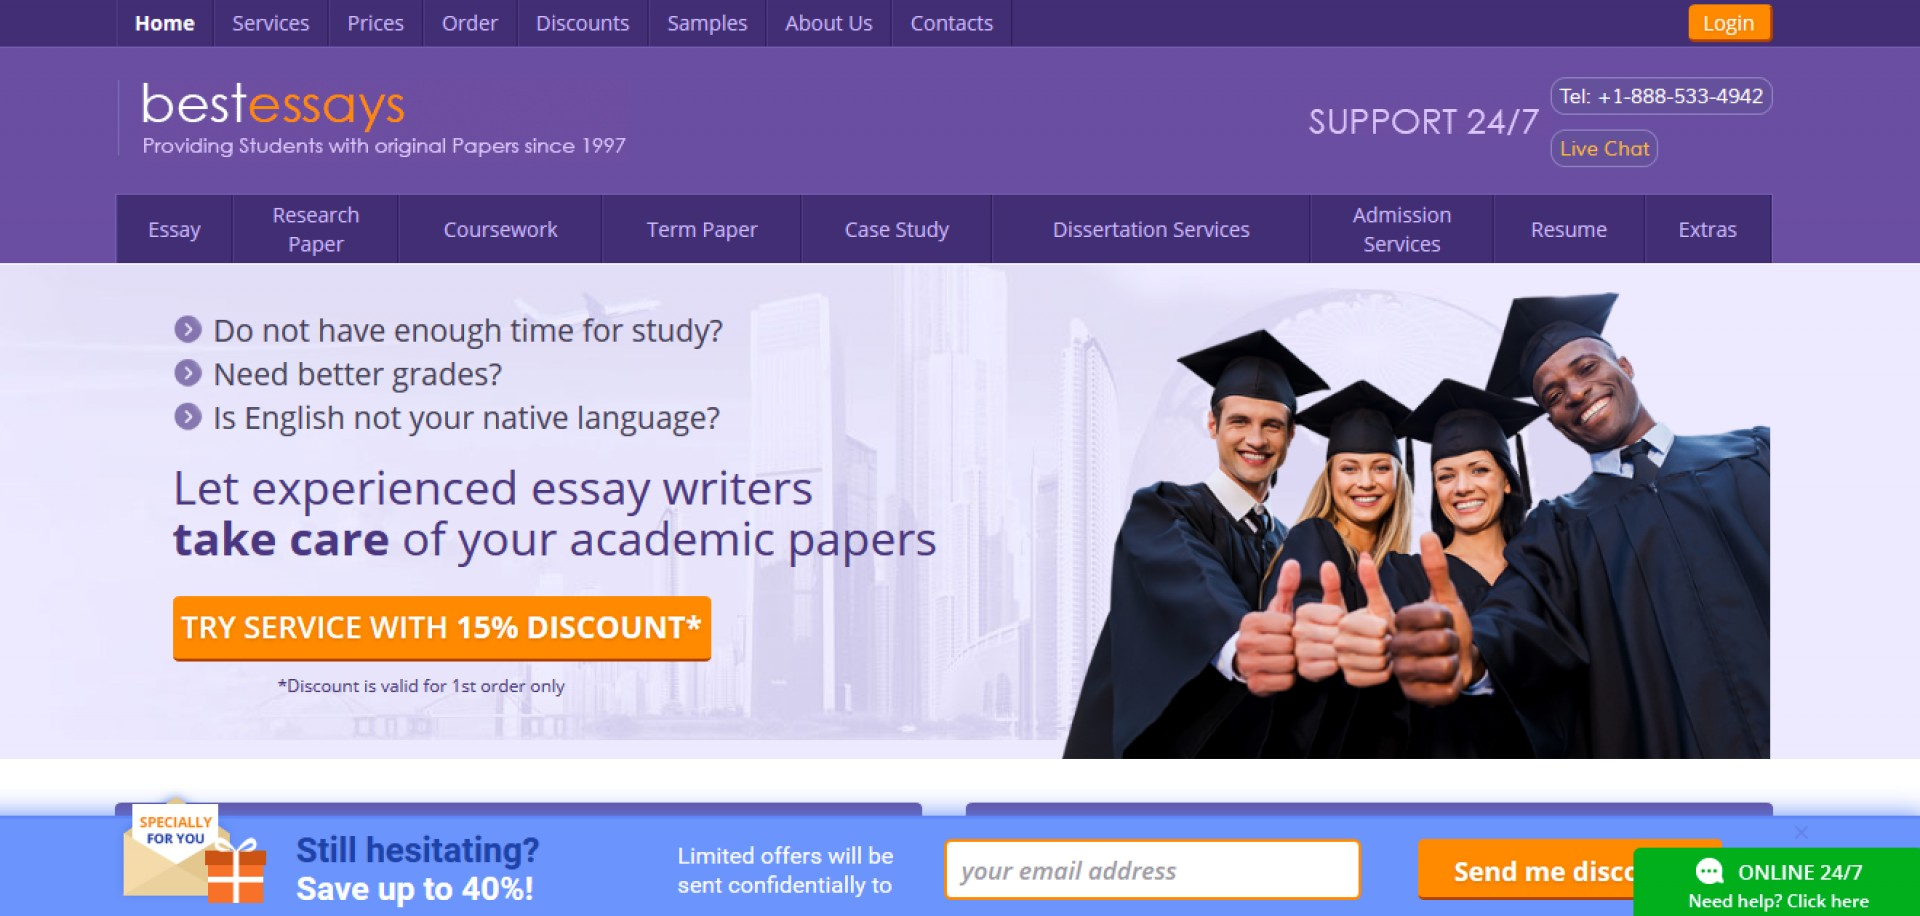 015 Custom Essay Professional Writing Site Online Dreaded Meister Discount Code Service Reviews 1920